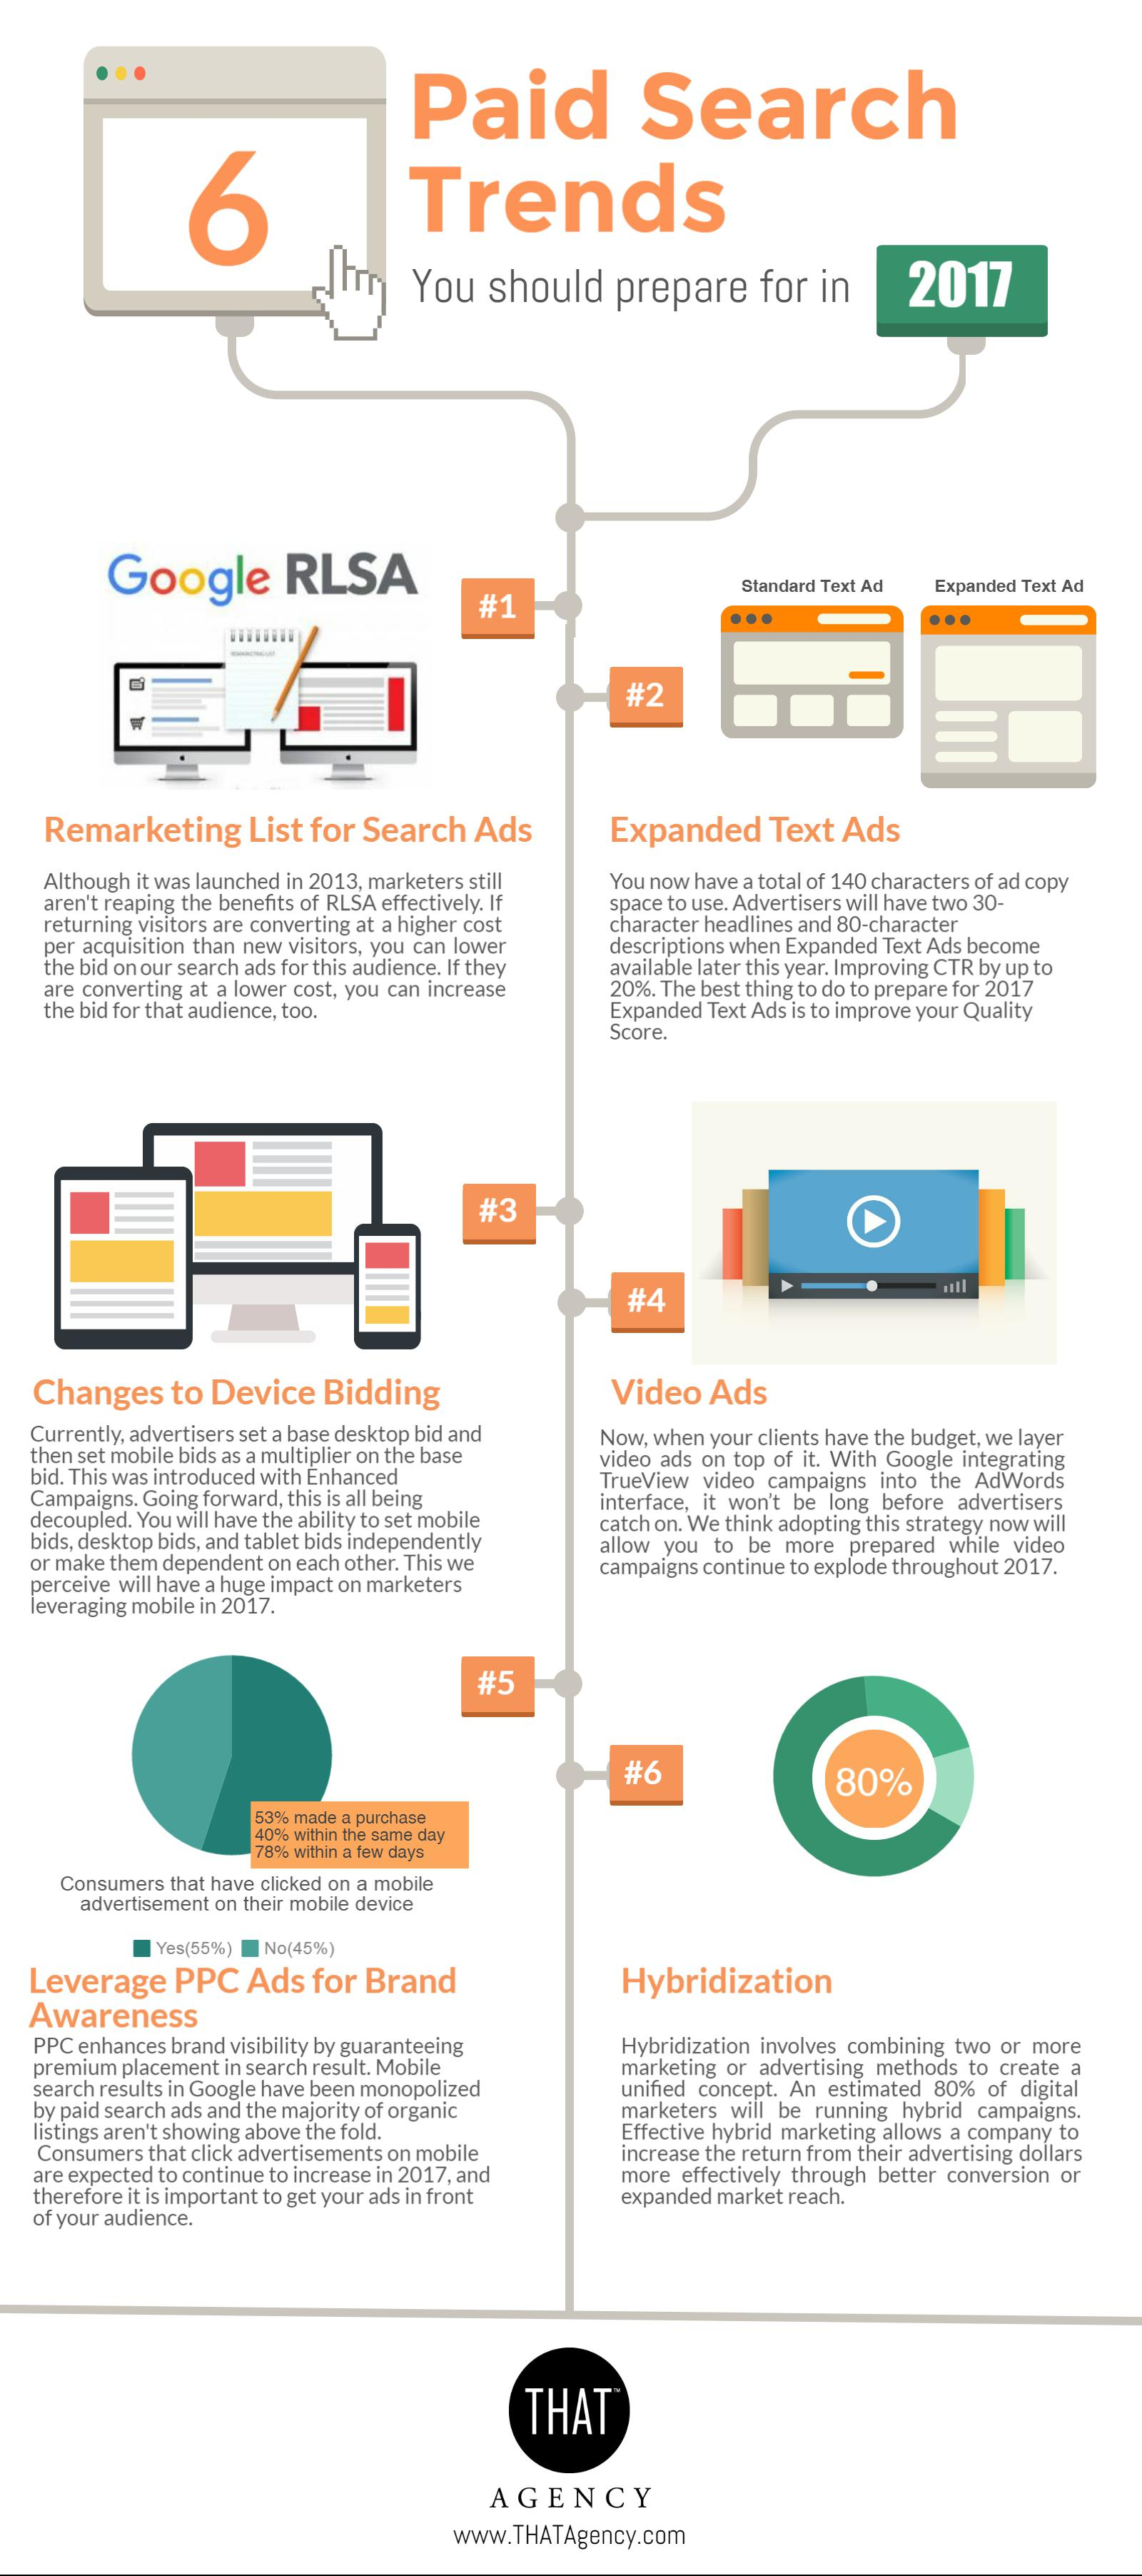 2017 Paid Search Trends | THAT Agency